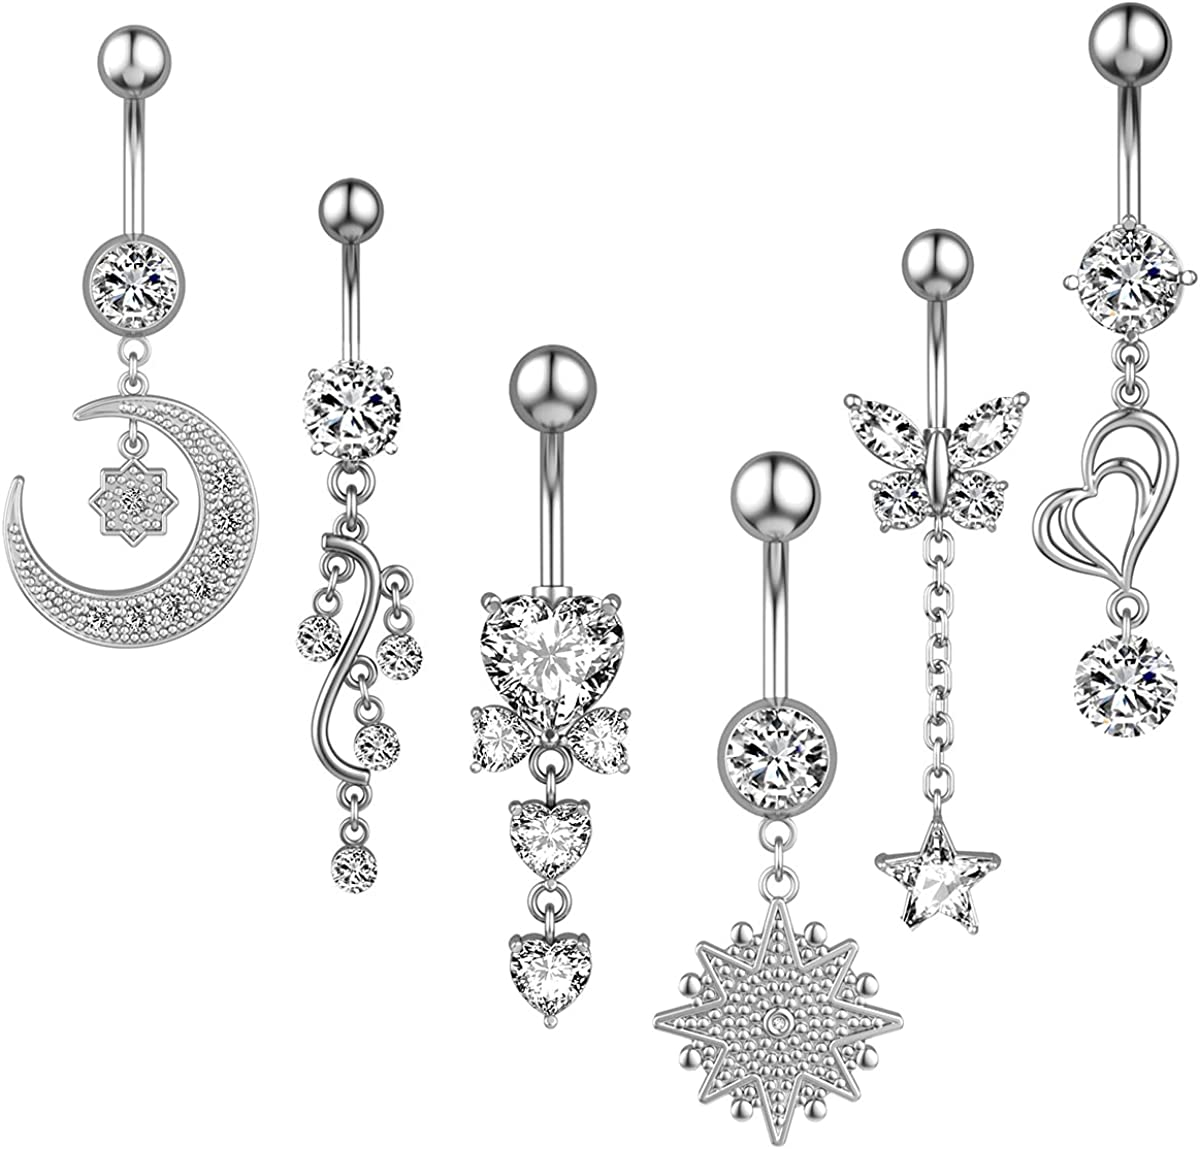 Ezclassy-9Pcs 14G Belly Button Rings Dangle for Women Girls Surgical Steel Navel Rings Barbell Body Piercing Jewelry